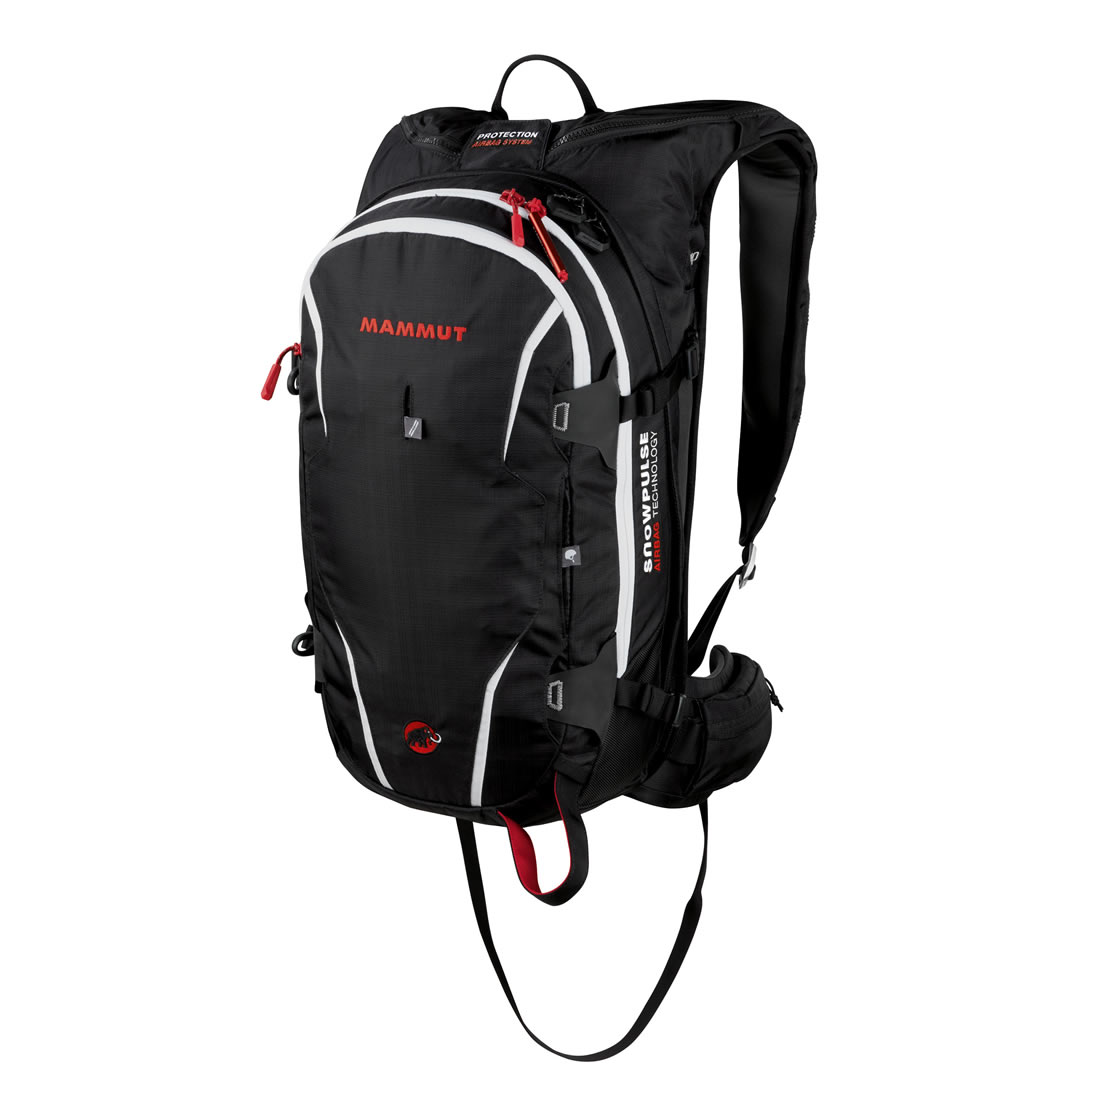 Sac à dos airbag Mammut Ride Protection Airbag